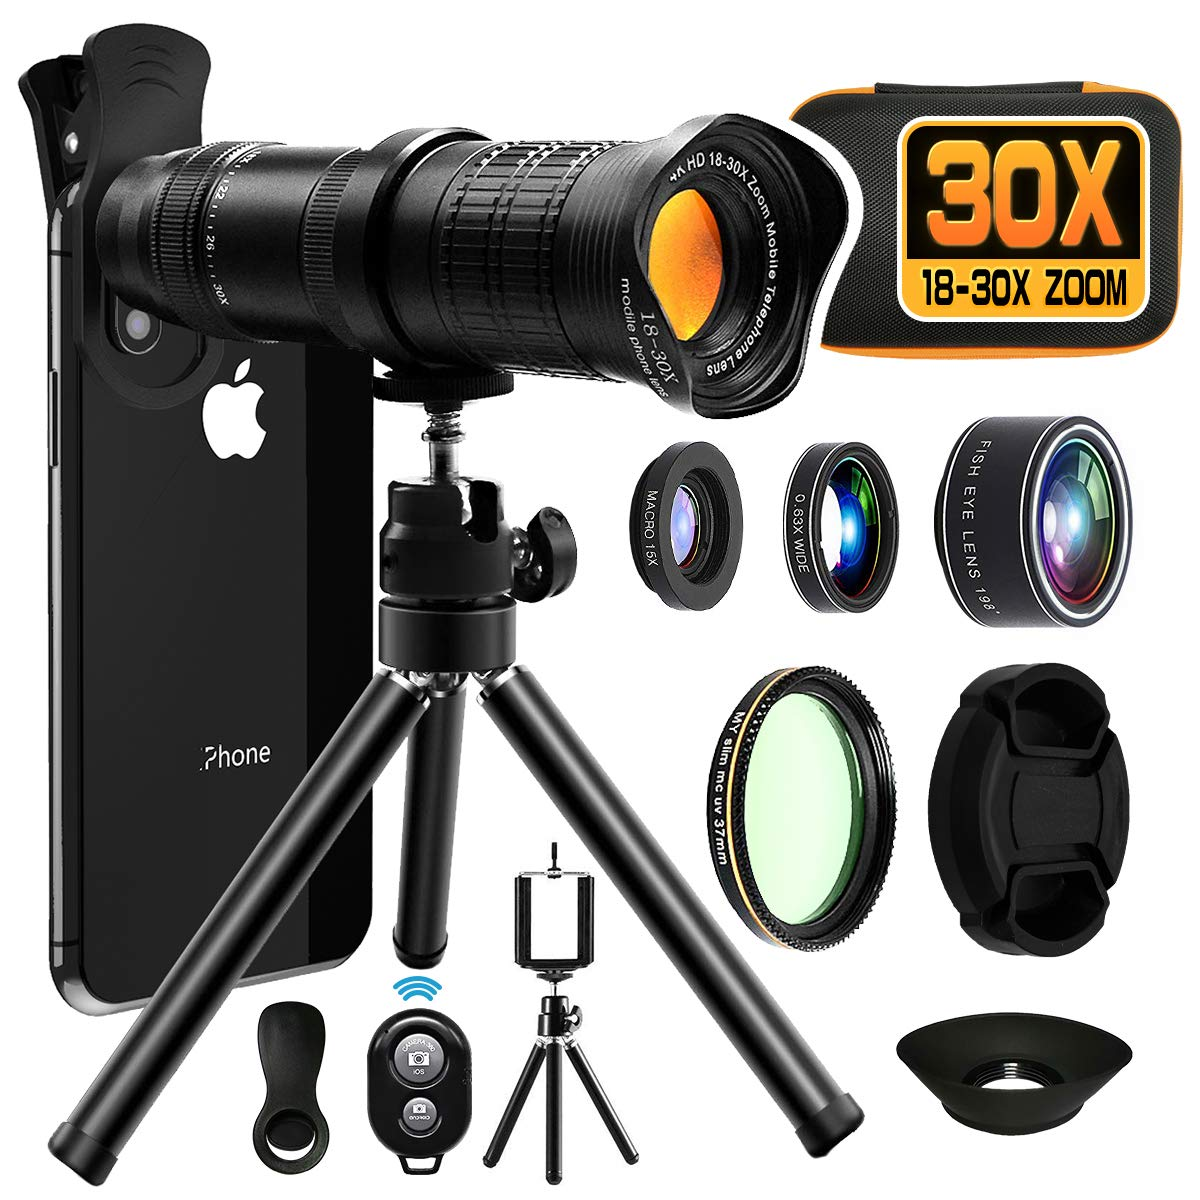 773a77b2eab484 Moikin 18X-30X Cell Phone Camera Lens, 4 in 1 Photography Lens Kit - 18X-30X  Zoom Telephoto Lens - Remote ...